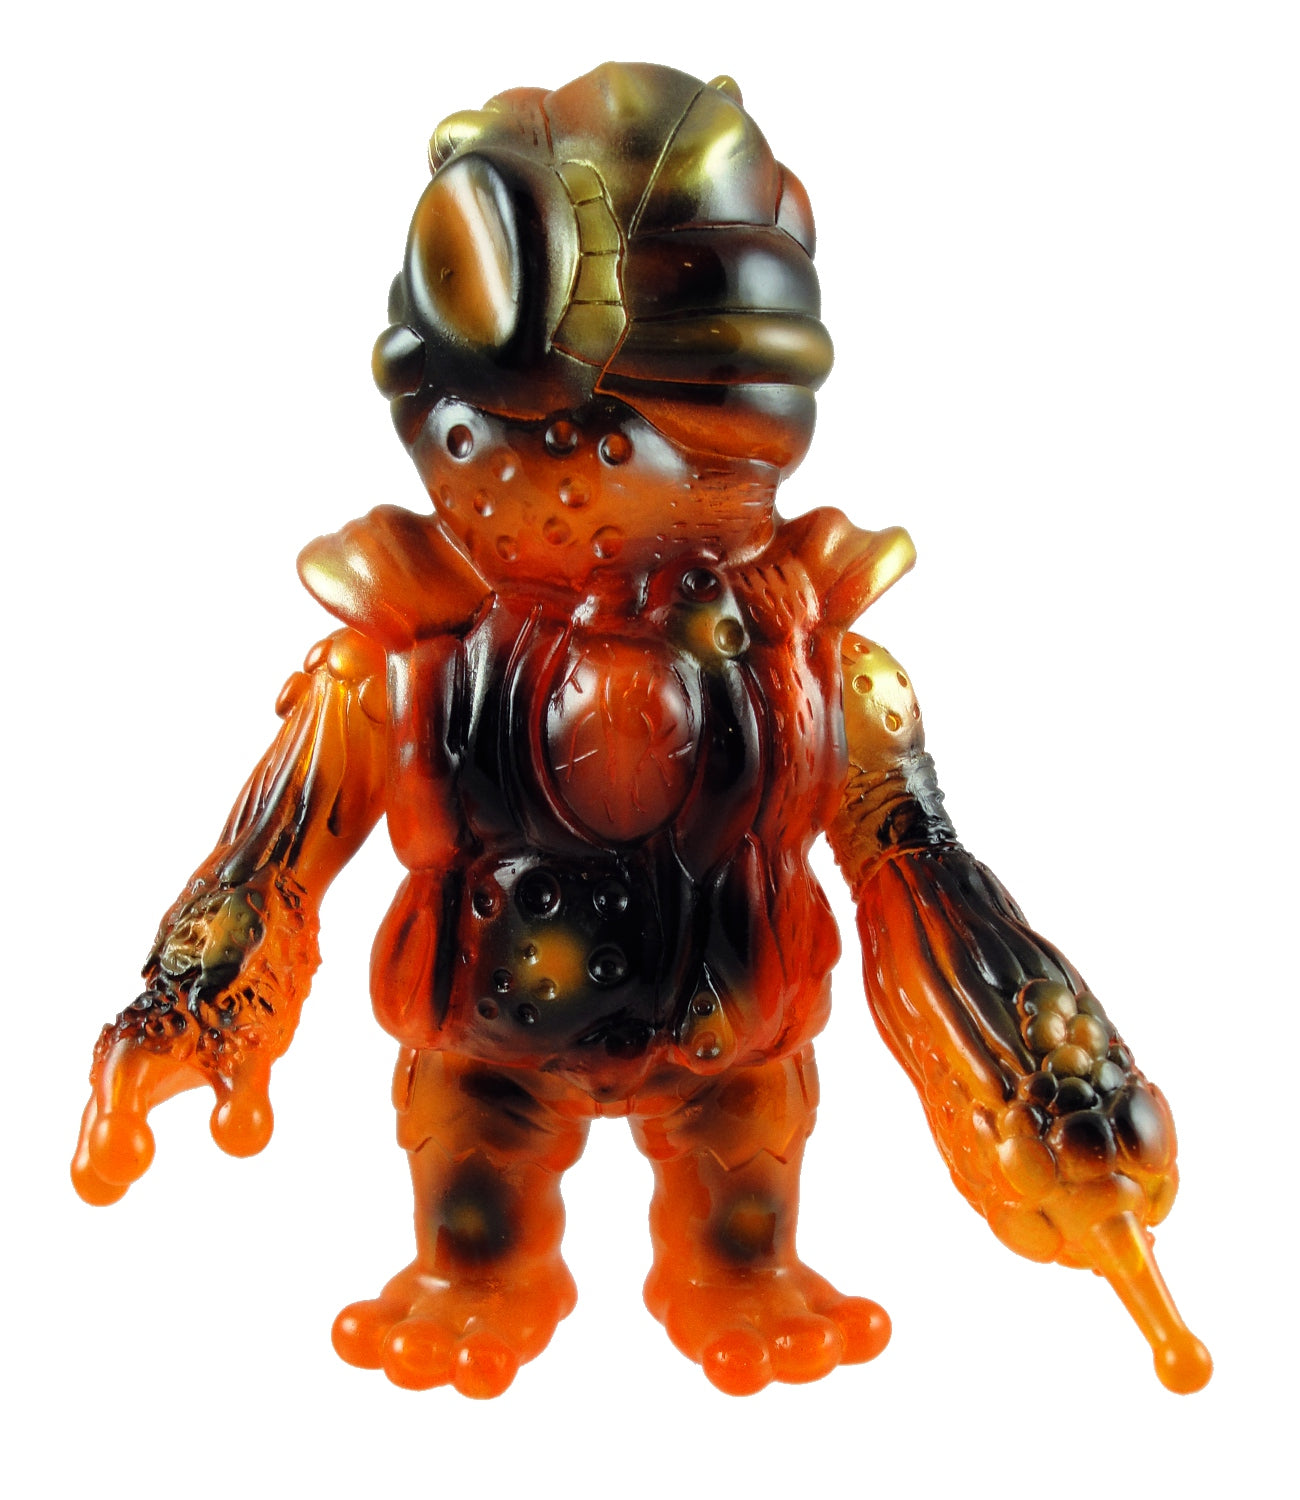 RealxHead Organ Bat Super7 Exclusive Mutant Orange Sofubi Soft Vinyl Figure Designer Toy